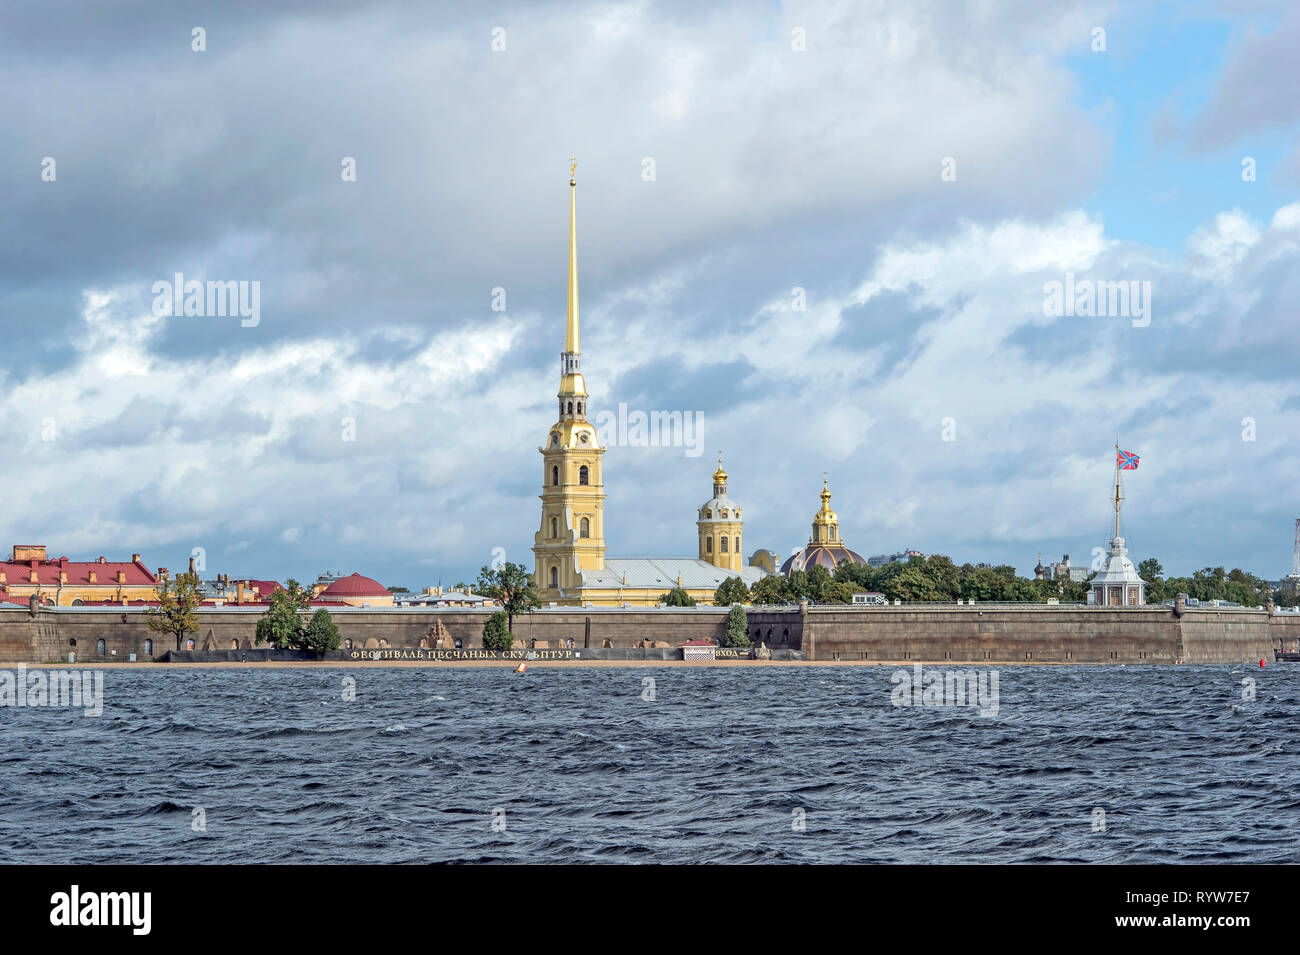 View from the Neva river to Peter and Paul fortress St. Petersburg, Russia, September 2018 - Stock Photo